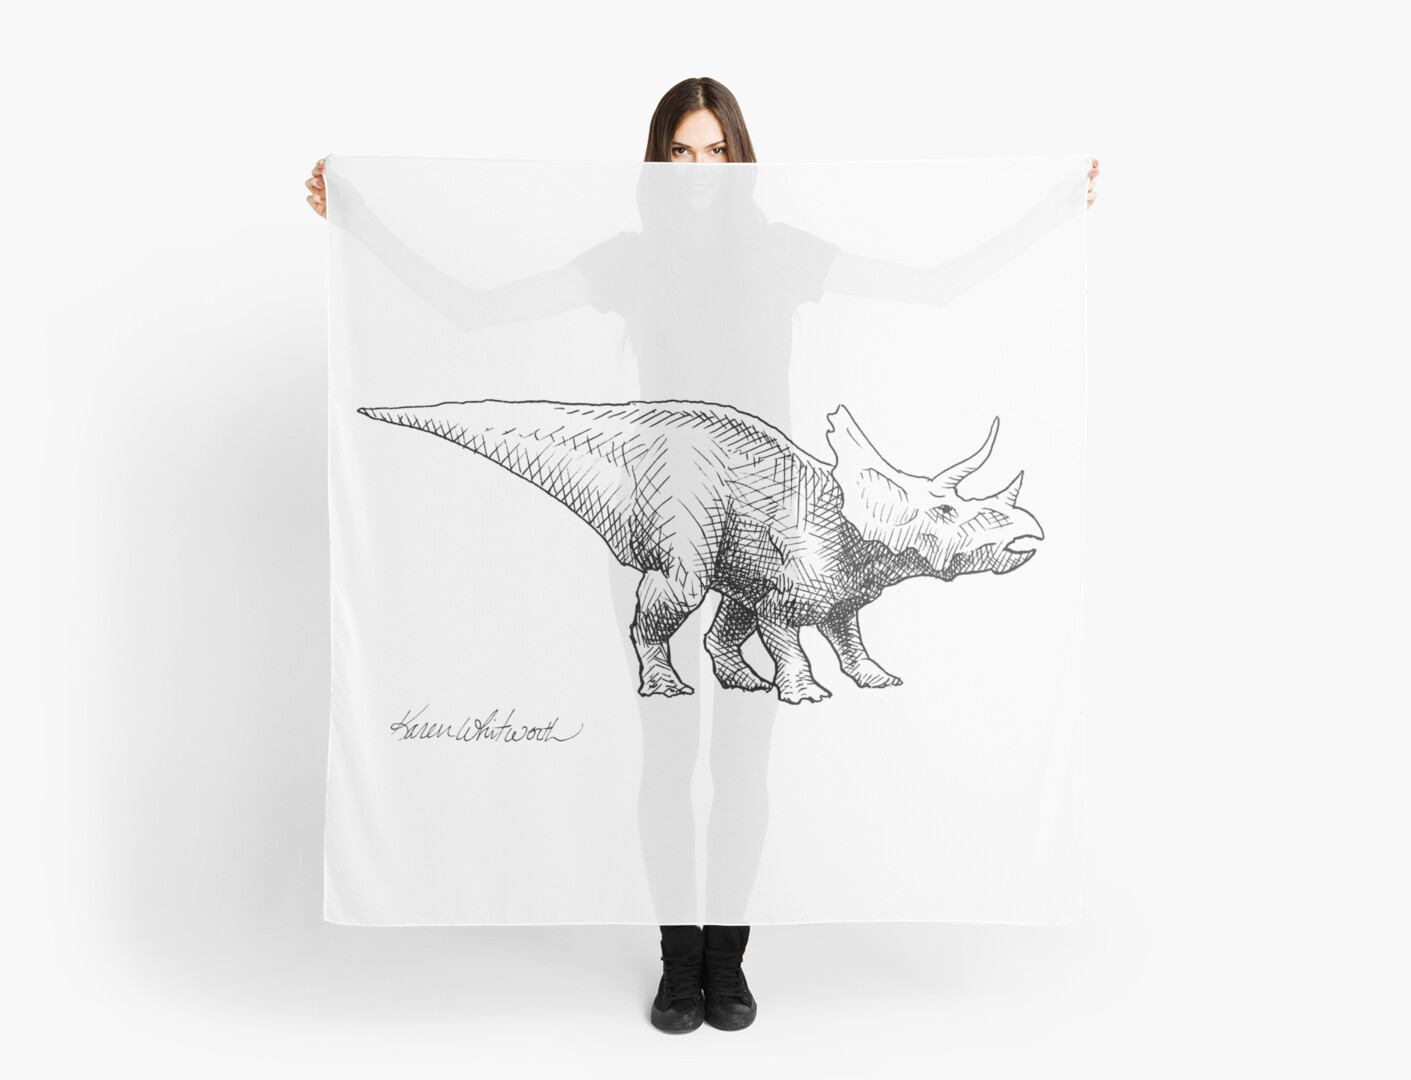 Dinosaur Long Neck Dino Sketch Personalized Tote Bag Tote